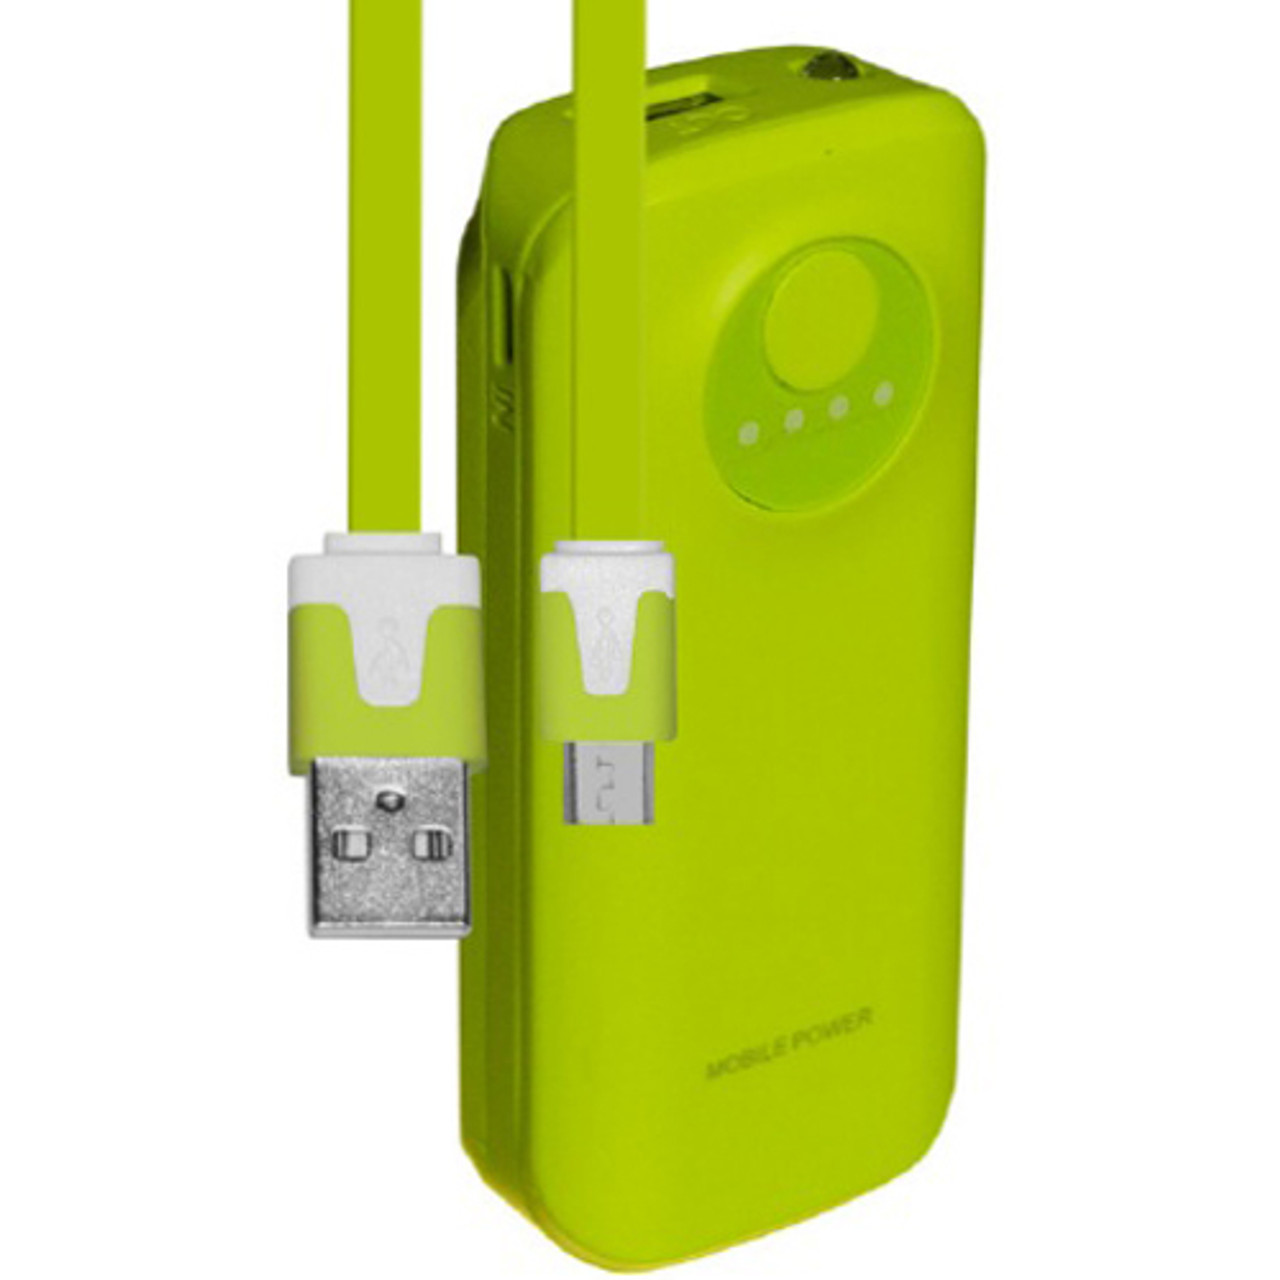 SYN 5200mAh Neon Power Battery Bank with USB Charging Cable in Green